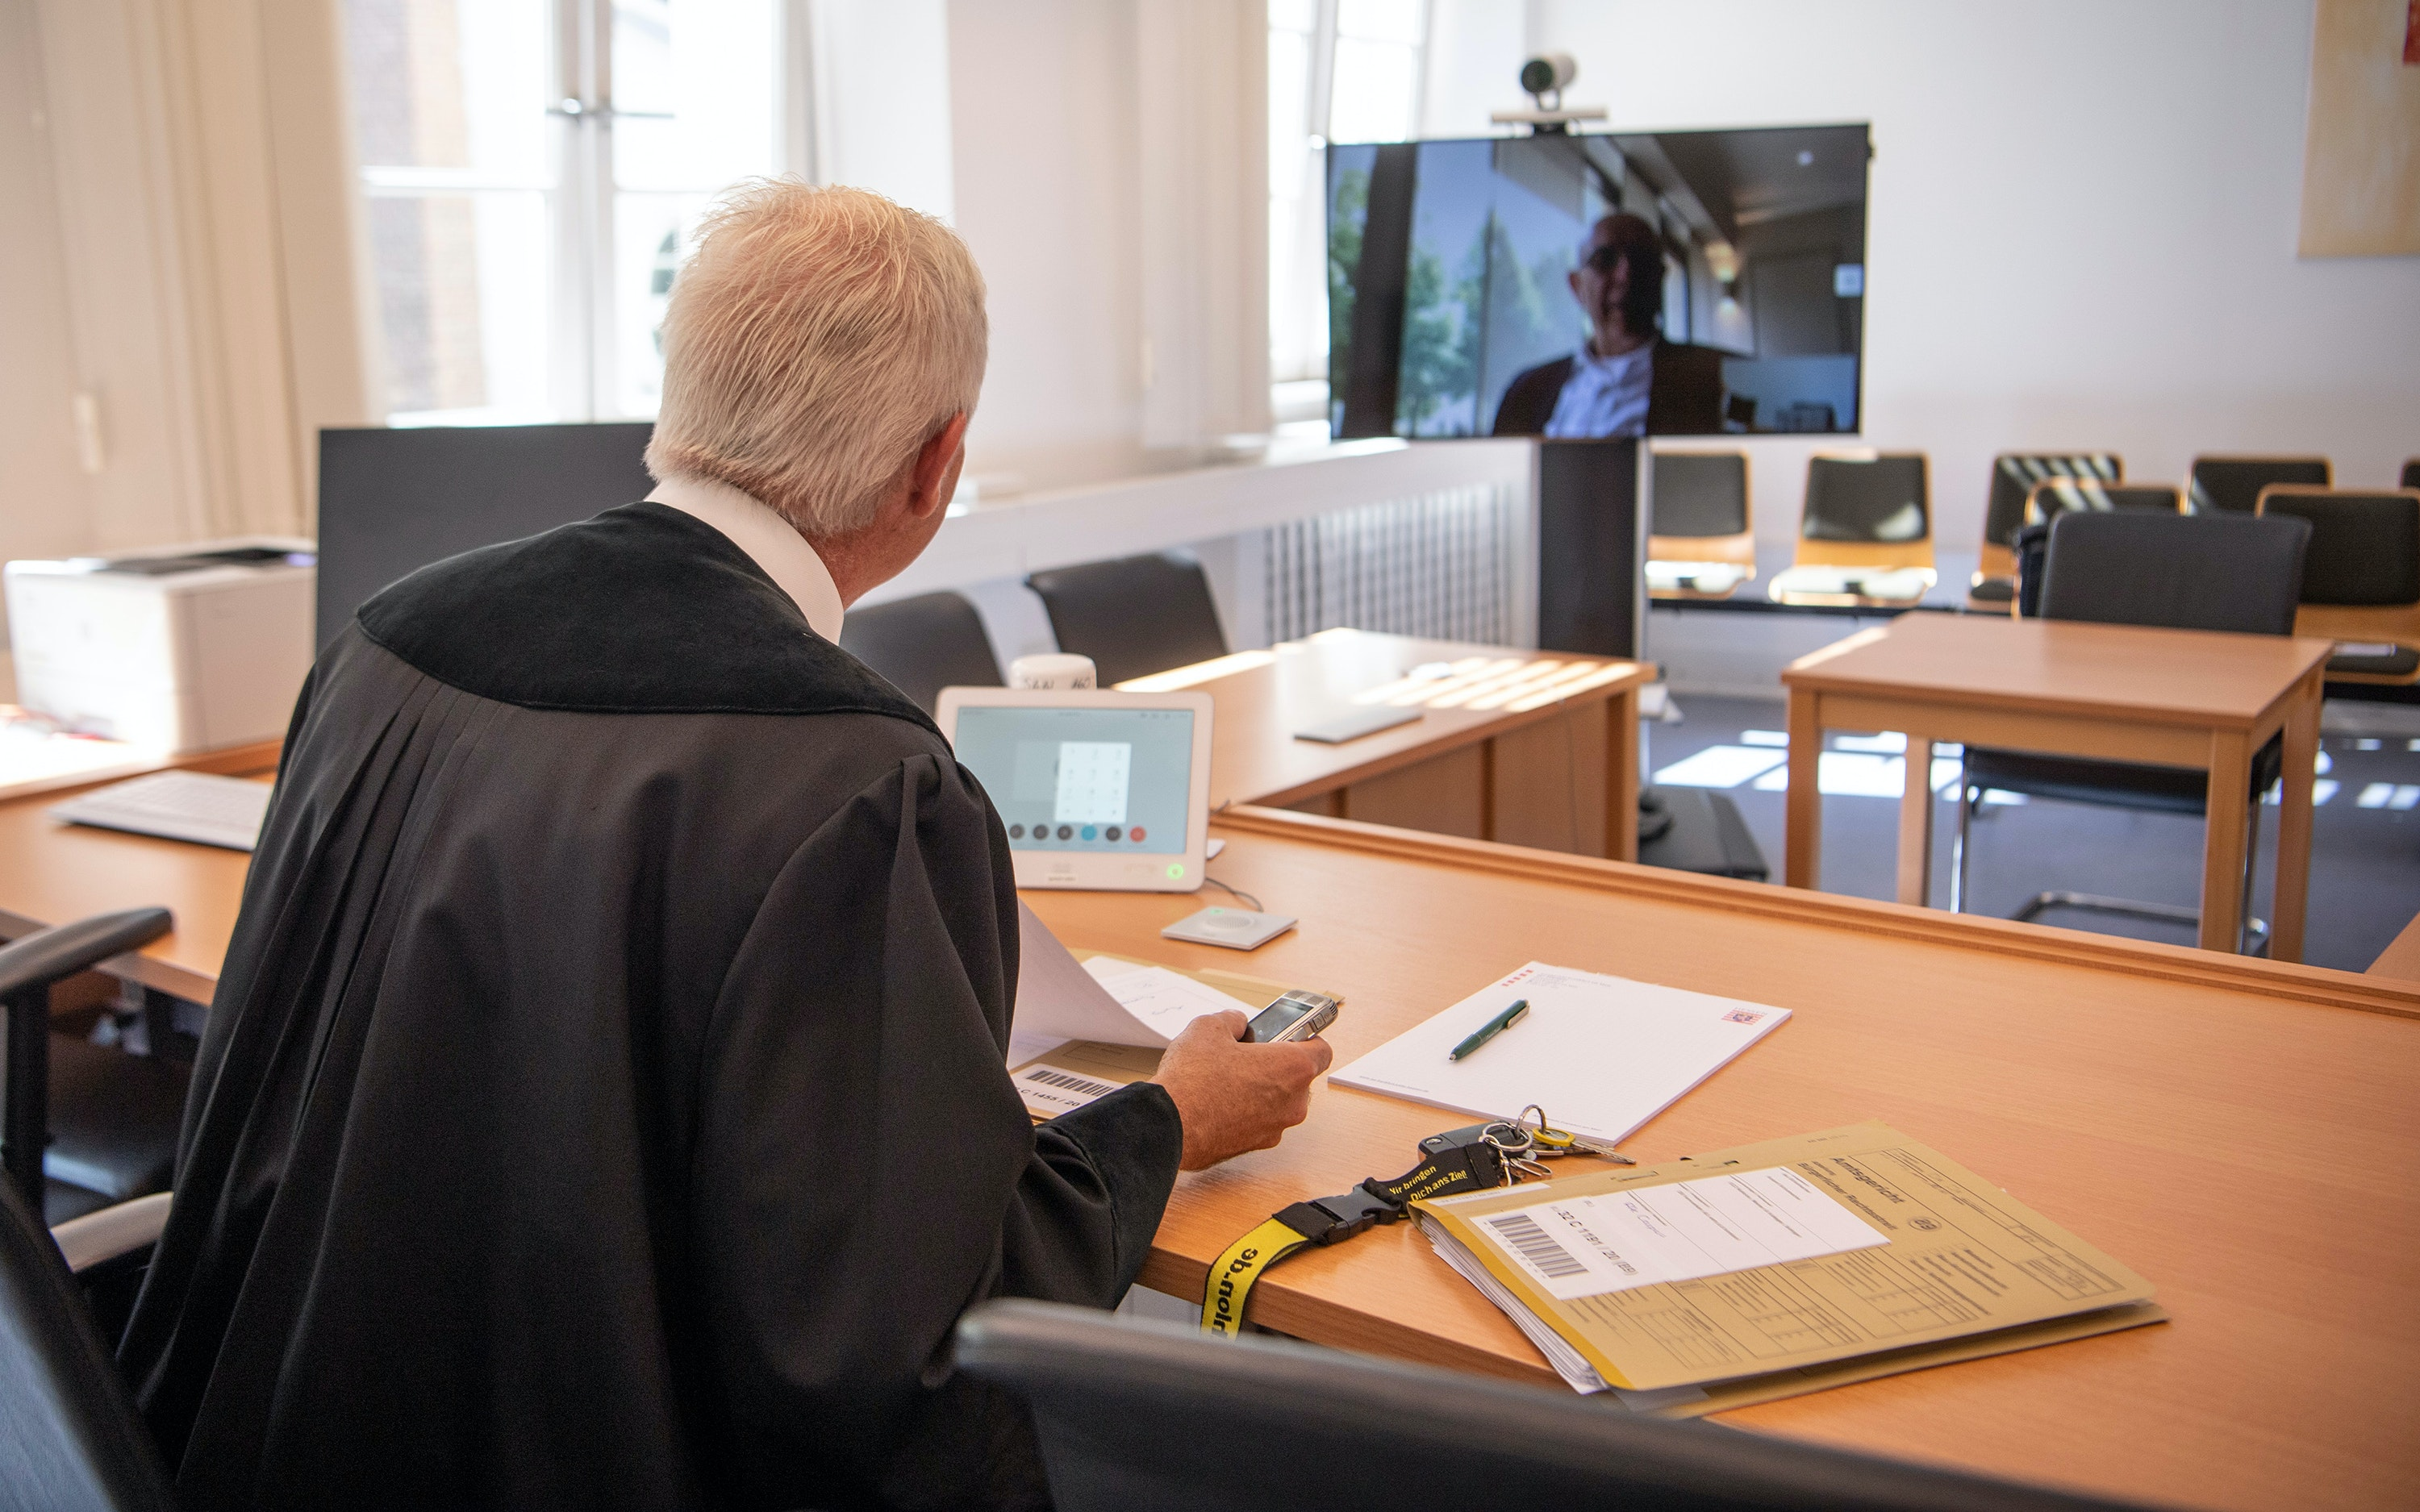 A German court talks to a lawyer through a camera during COVID-19.